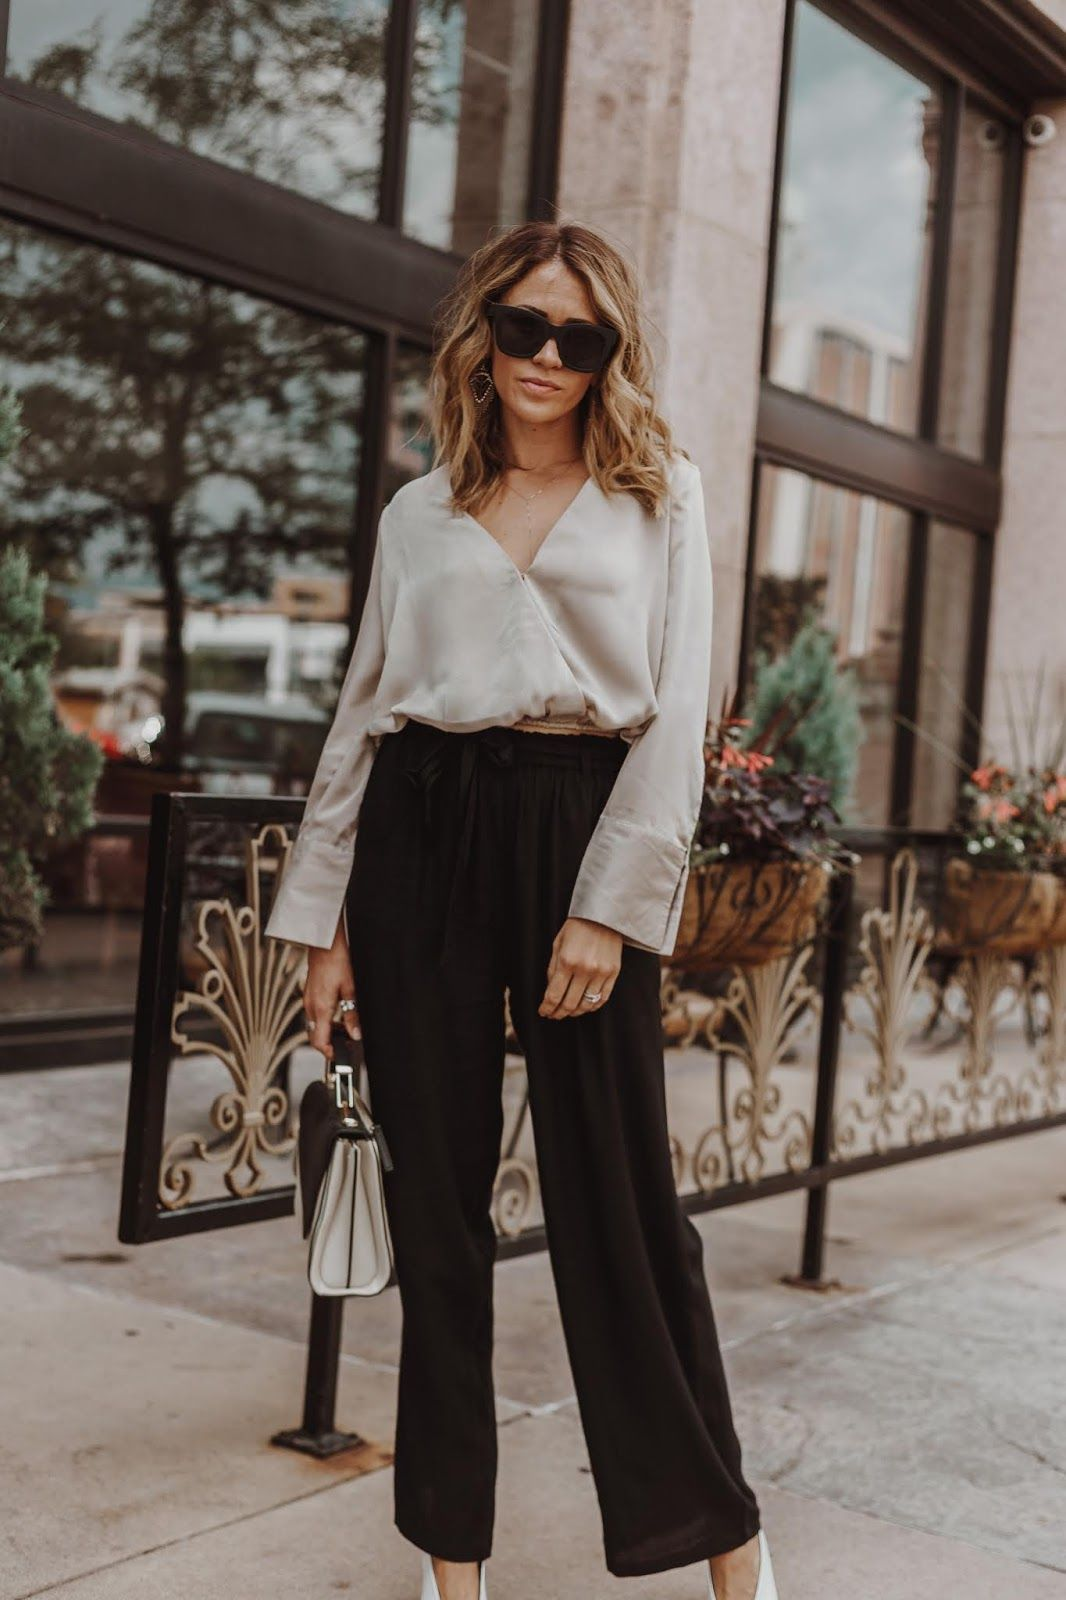 0f15b2959f761 What to wear to an office dinner party | Satin top outfit party | High  waist pants work | Wide leg high waist pants work | Satin long sleeve shirt  outfit ...